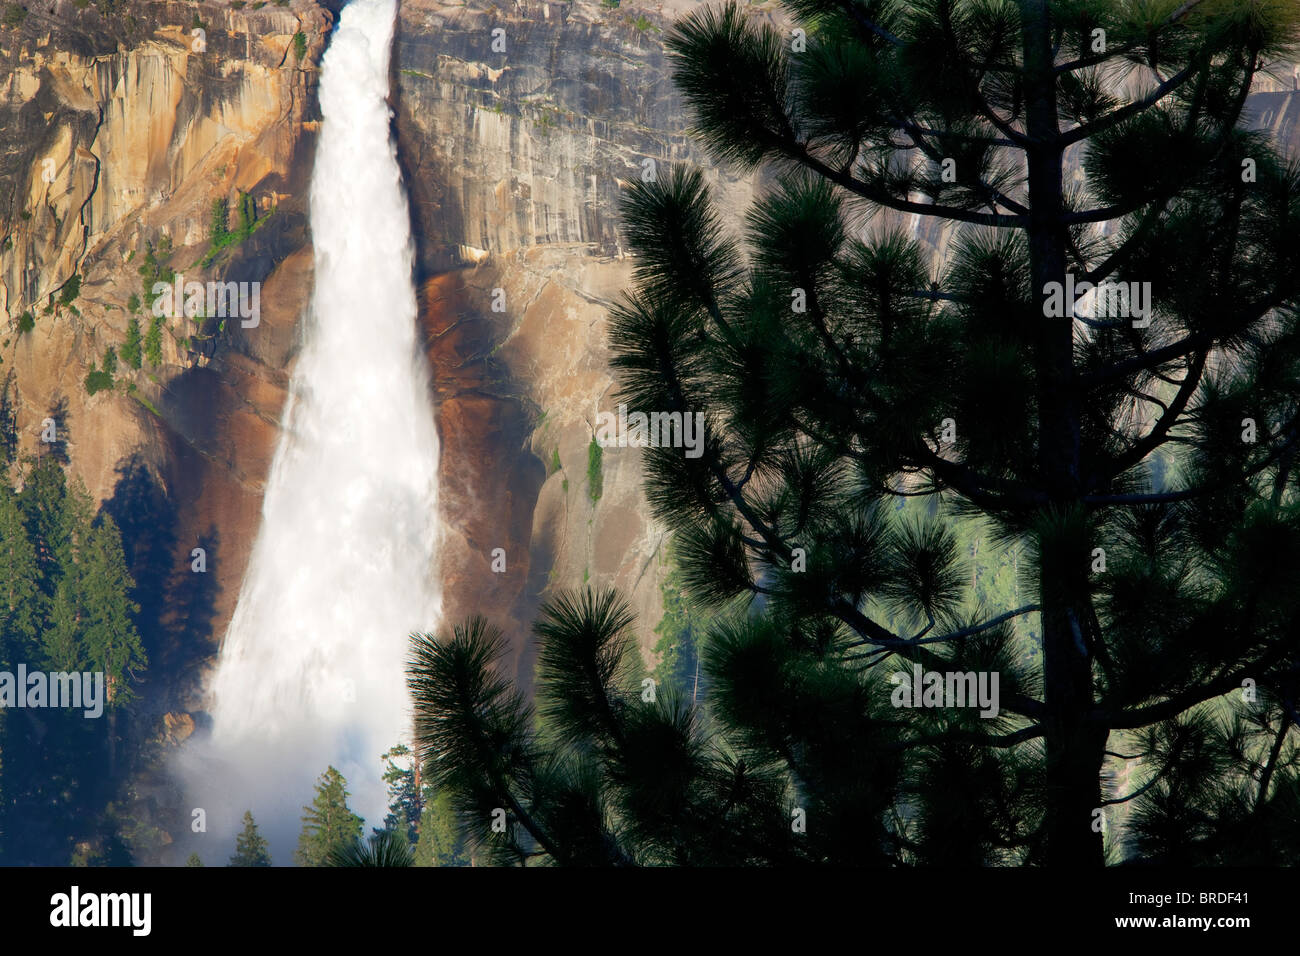 Nevada falls and pine tree as seen from Glacier Point. Yosemite National Park, California - Stock Image